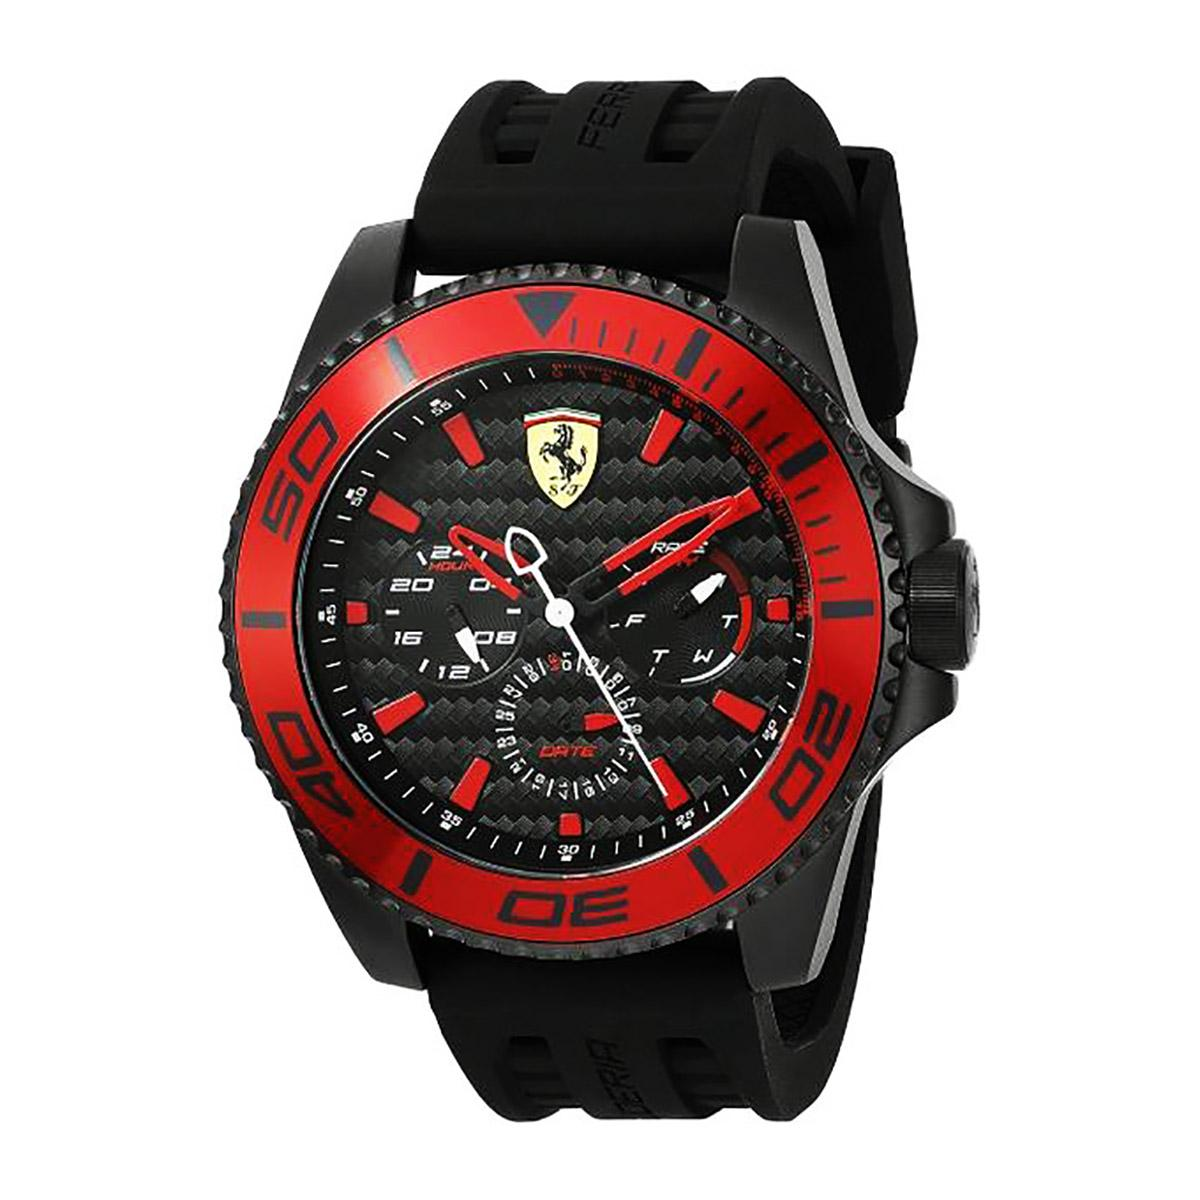 Price Ferrari Watch Xx Kers Black Stainless Steel Case Polyurethane Bracelet Mens 0830310 Ferrari Singapore